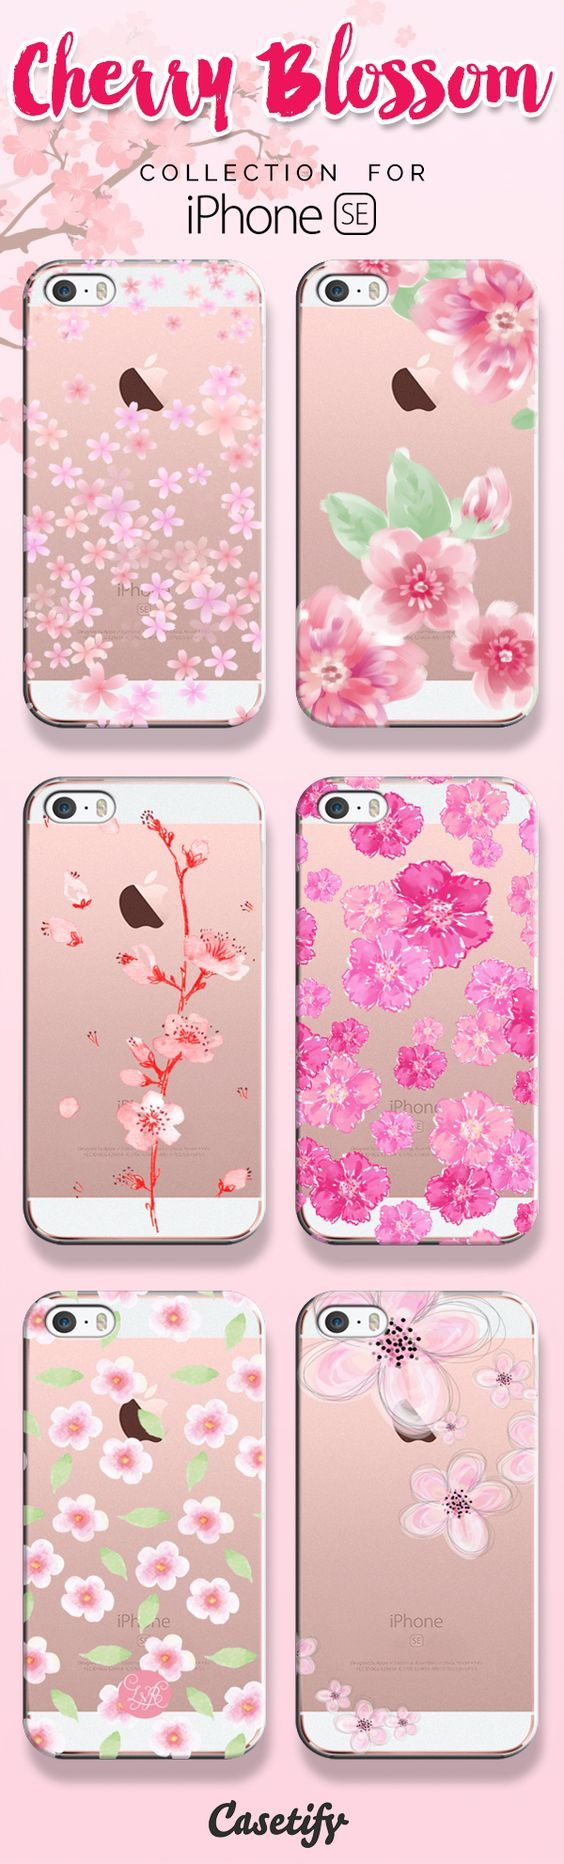 Where flowers bloom so does hope.. Shop these beautifully designed cherry blossom cases here: https://www.casetify.com/search?keyword=blossom   @casetify: